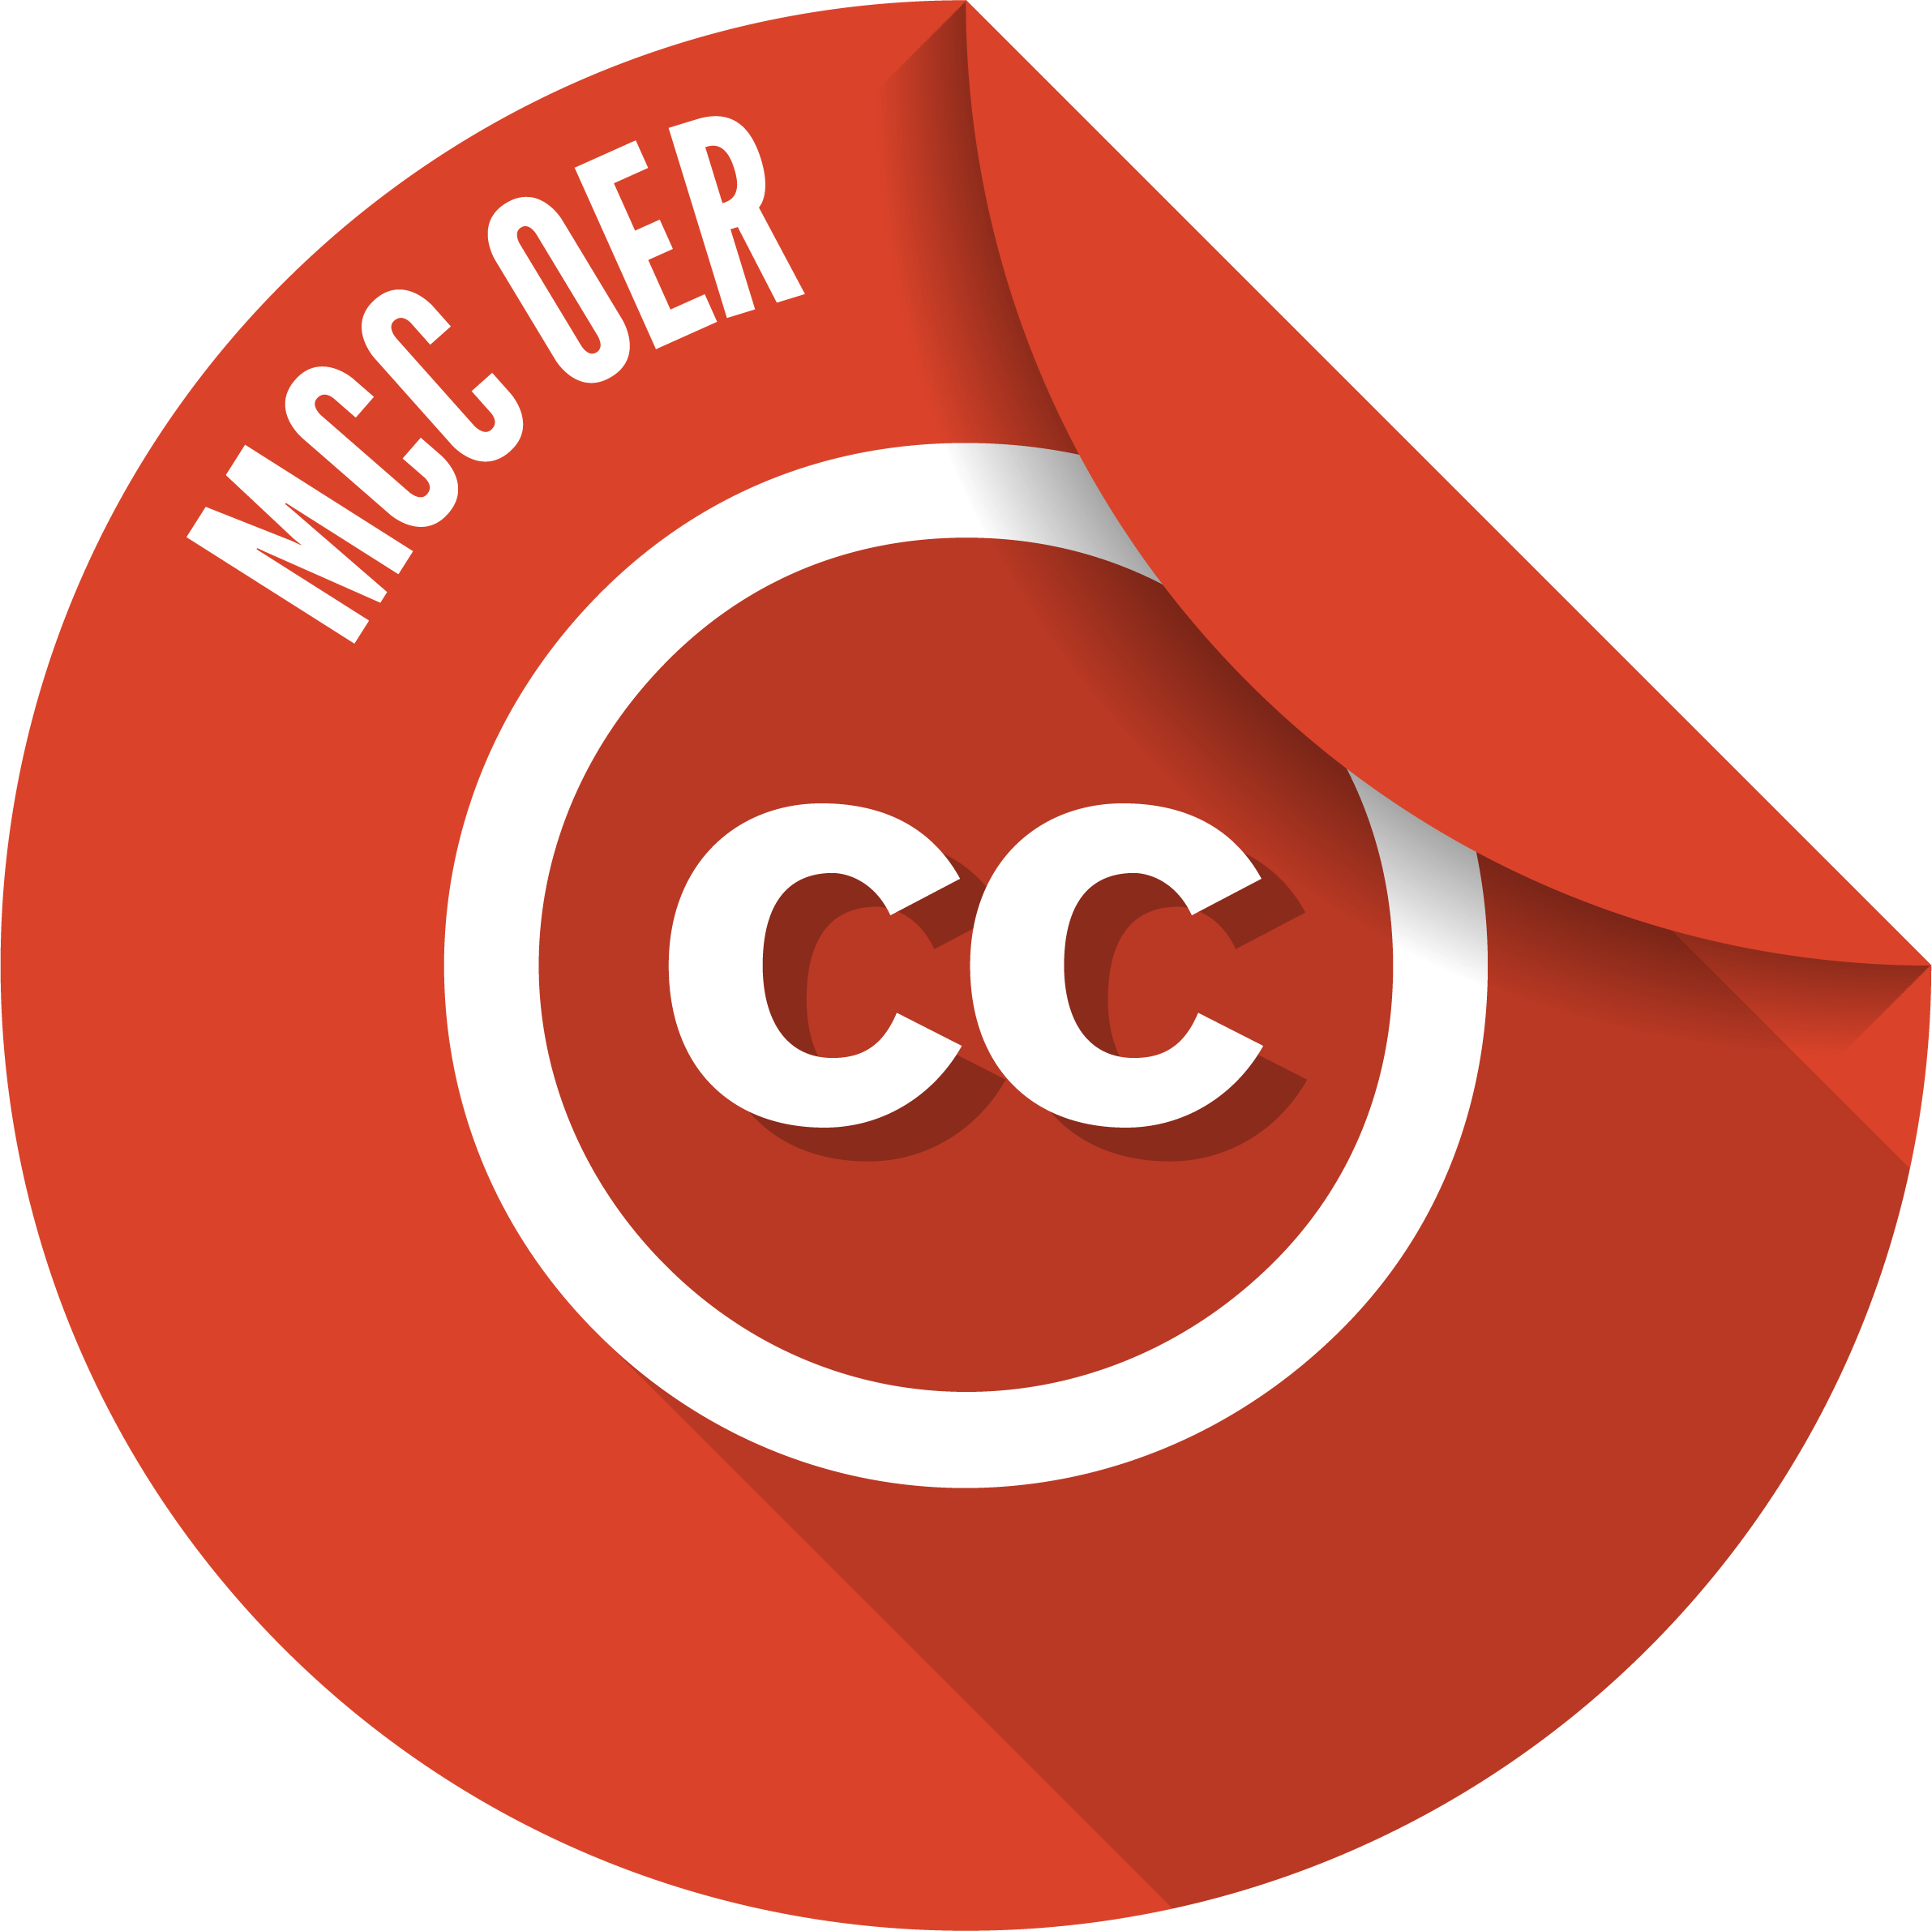 Unusable MCC OER badge